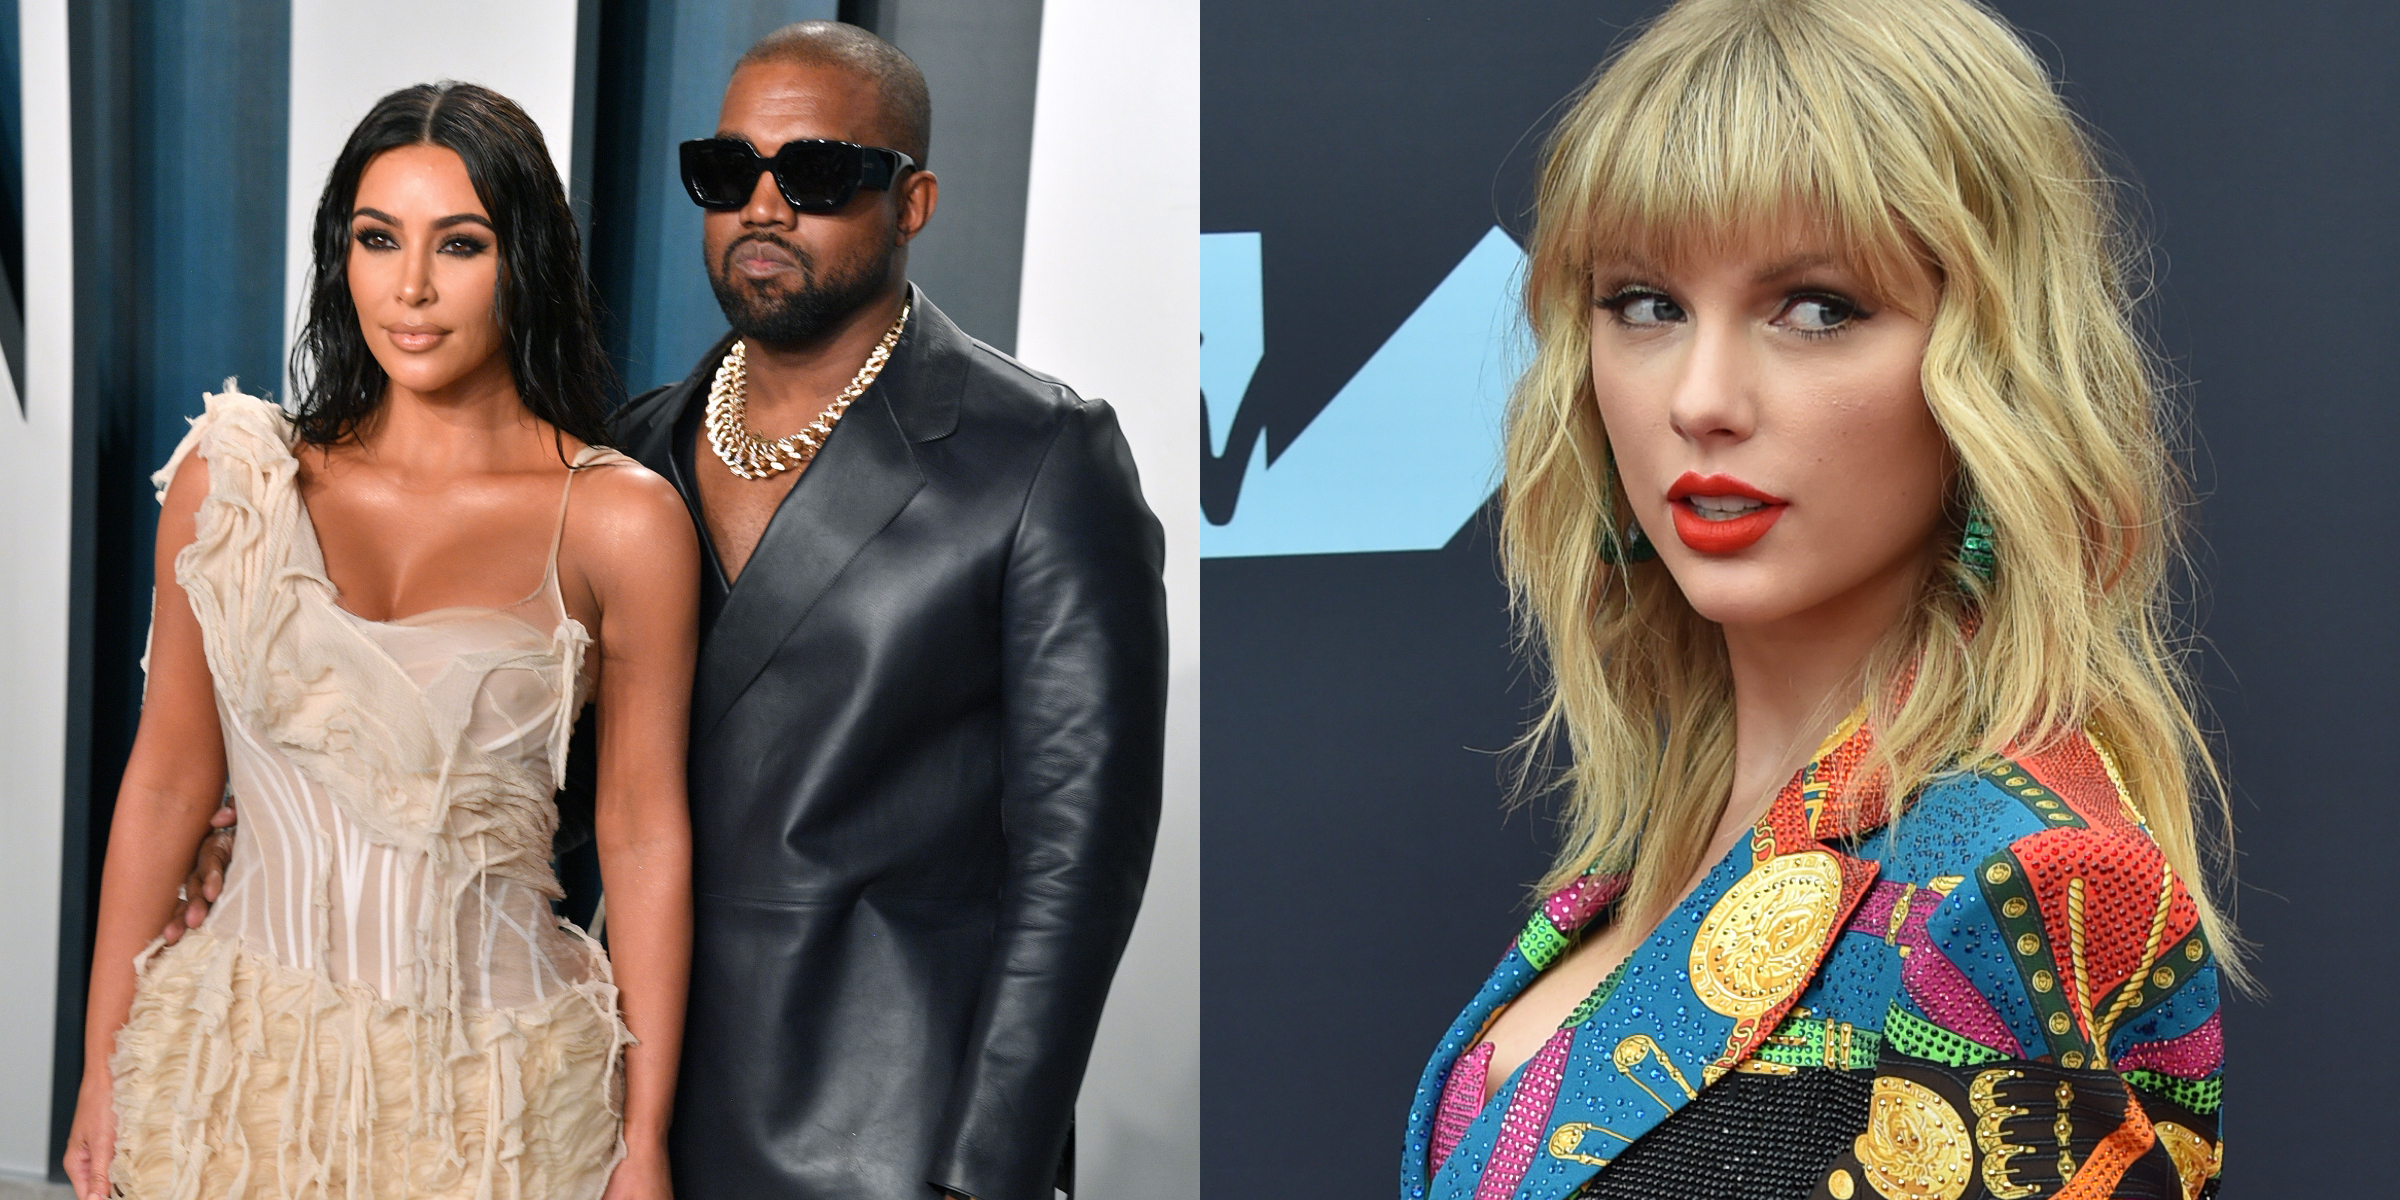 Taylor Swift Was Telling The Truth The Whole Time About Kanye West Recording